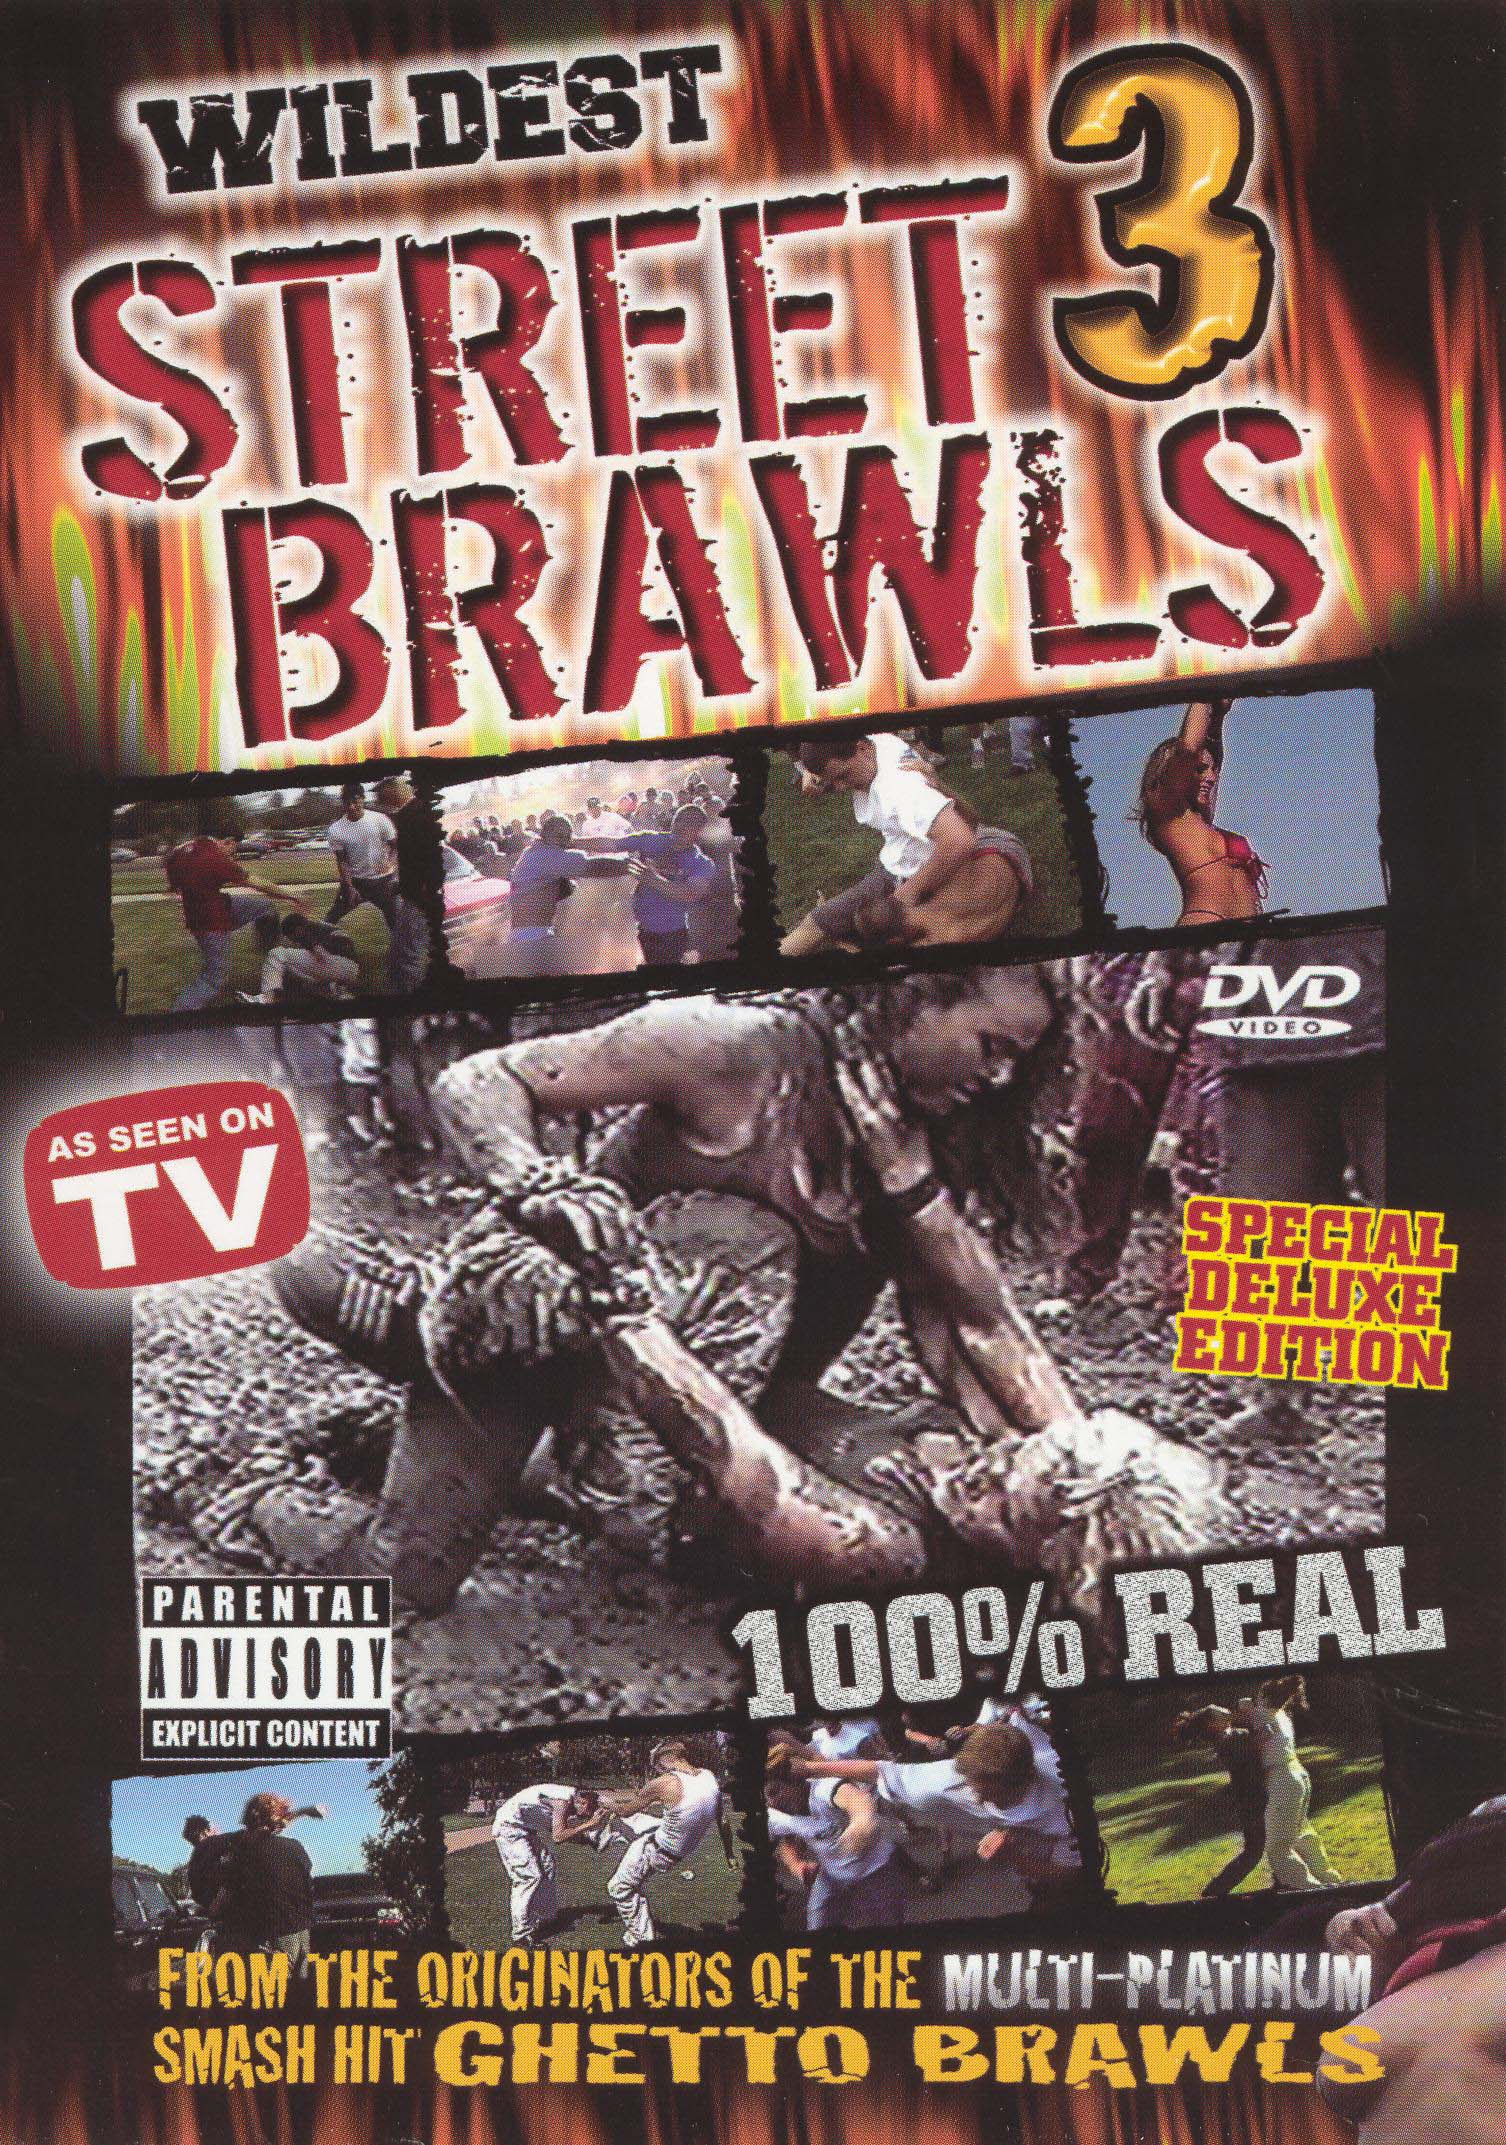 Wildest Street Brawls, Vol. 3